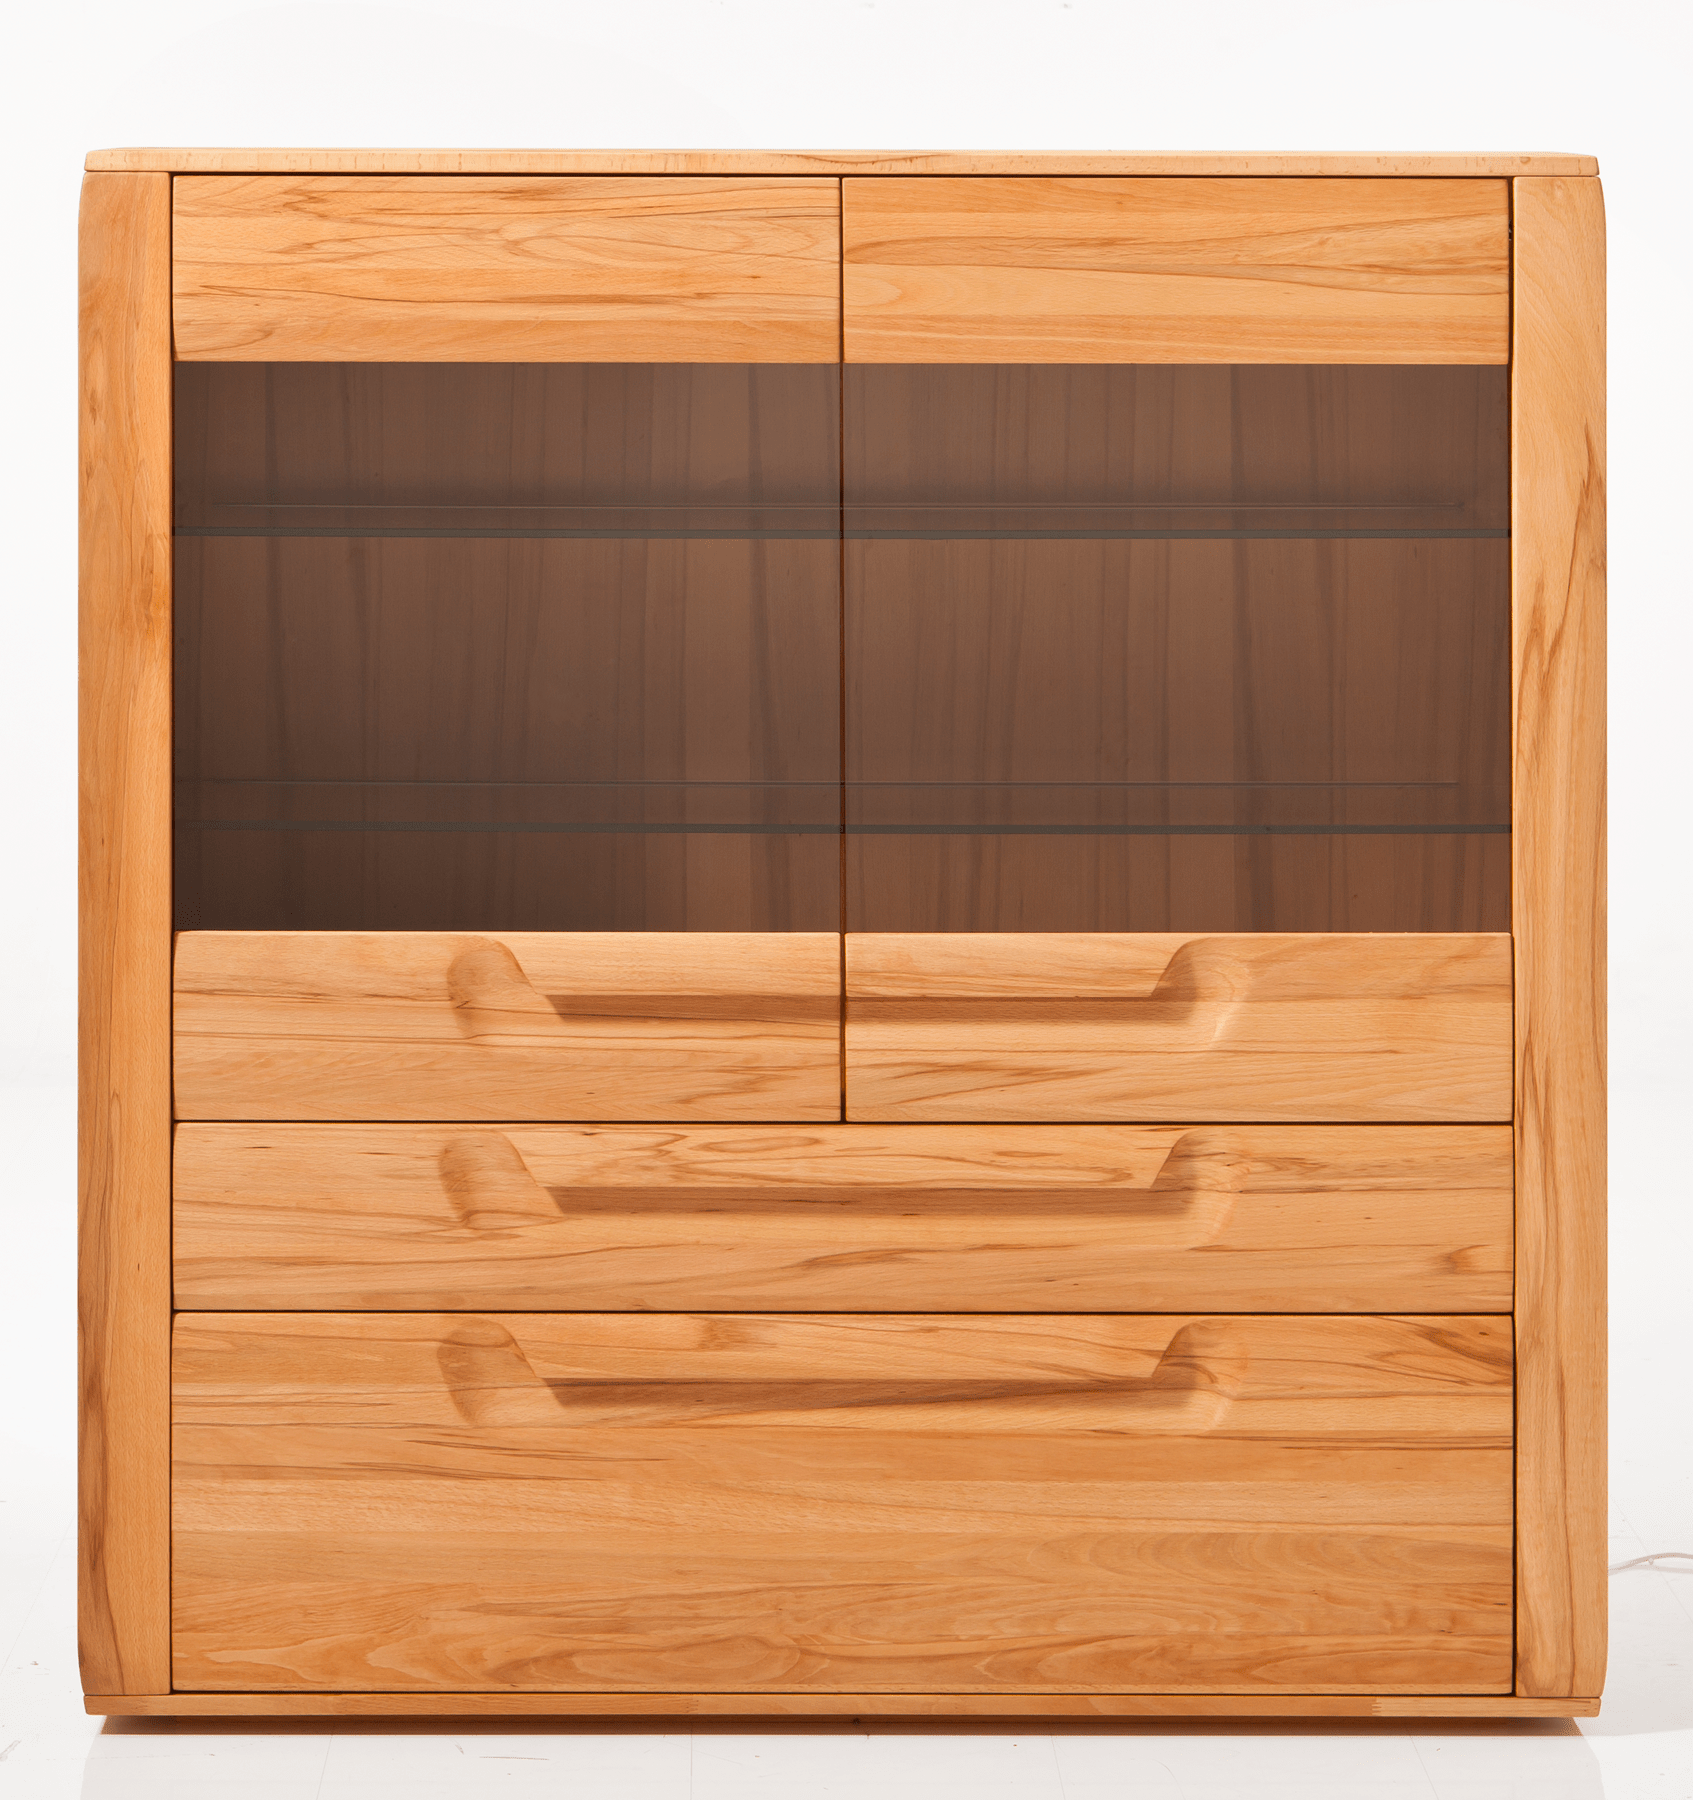 Wilhelmshaven Möbel Massives Highboard Aus Rotkernbuche Natura 4010